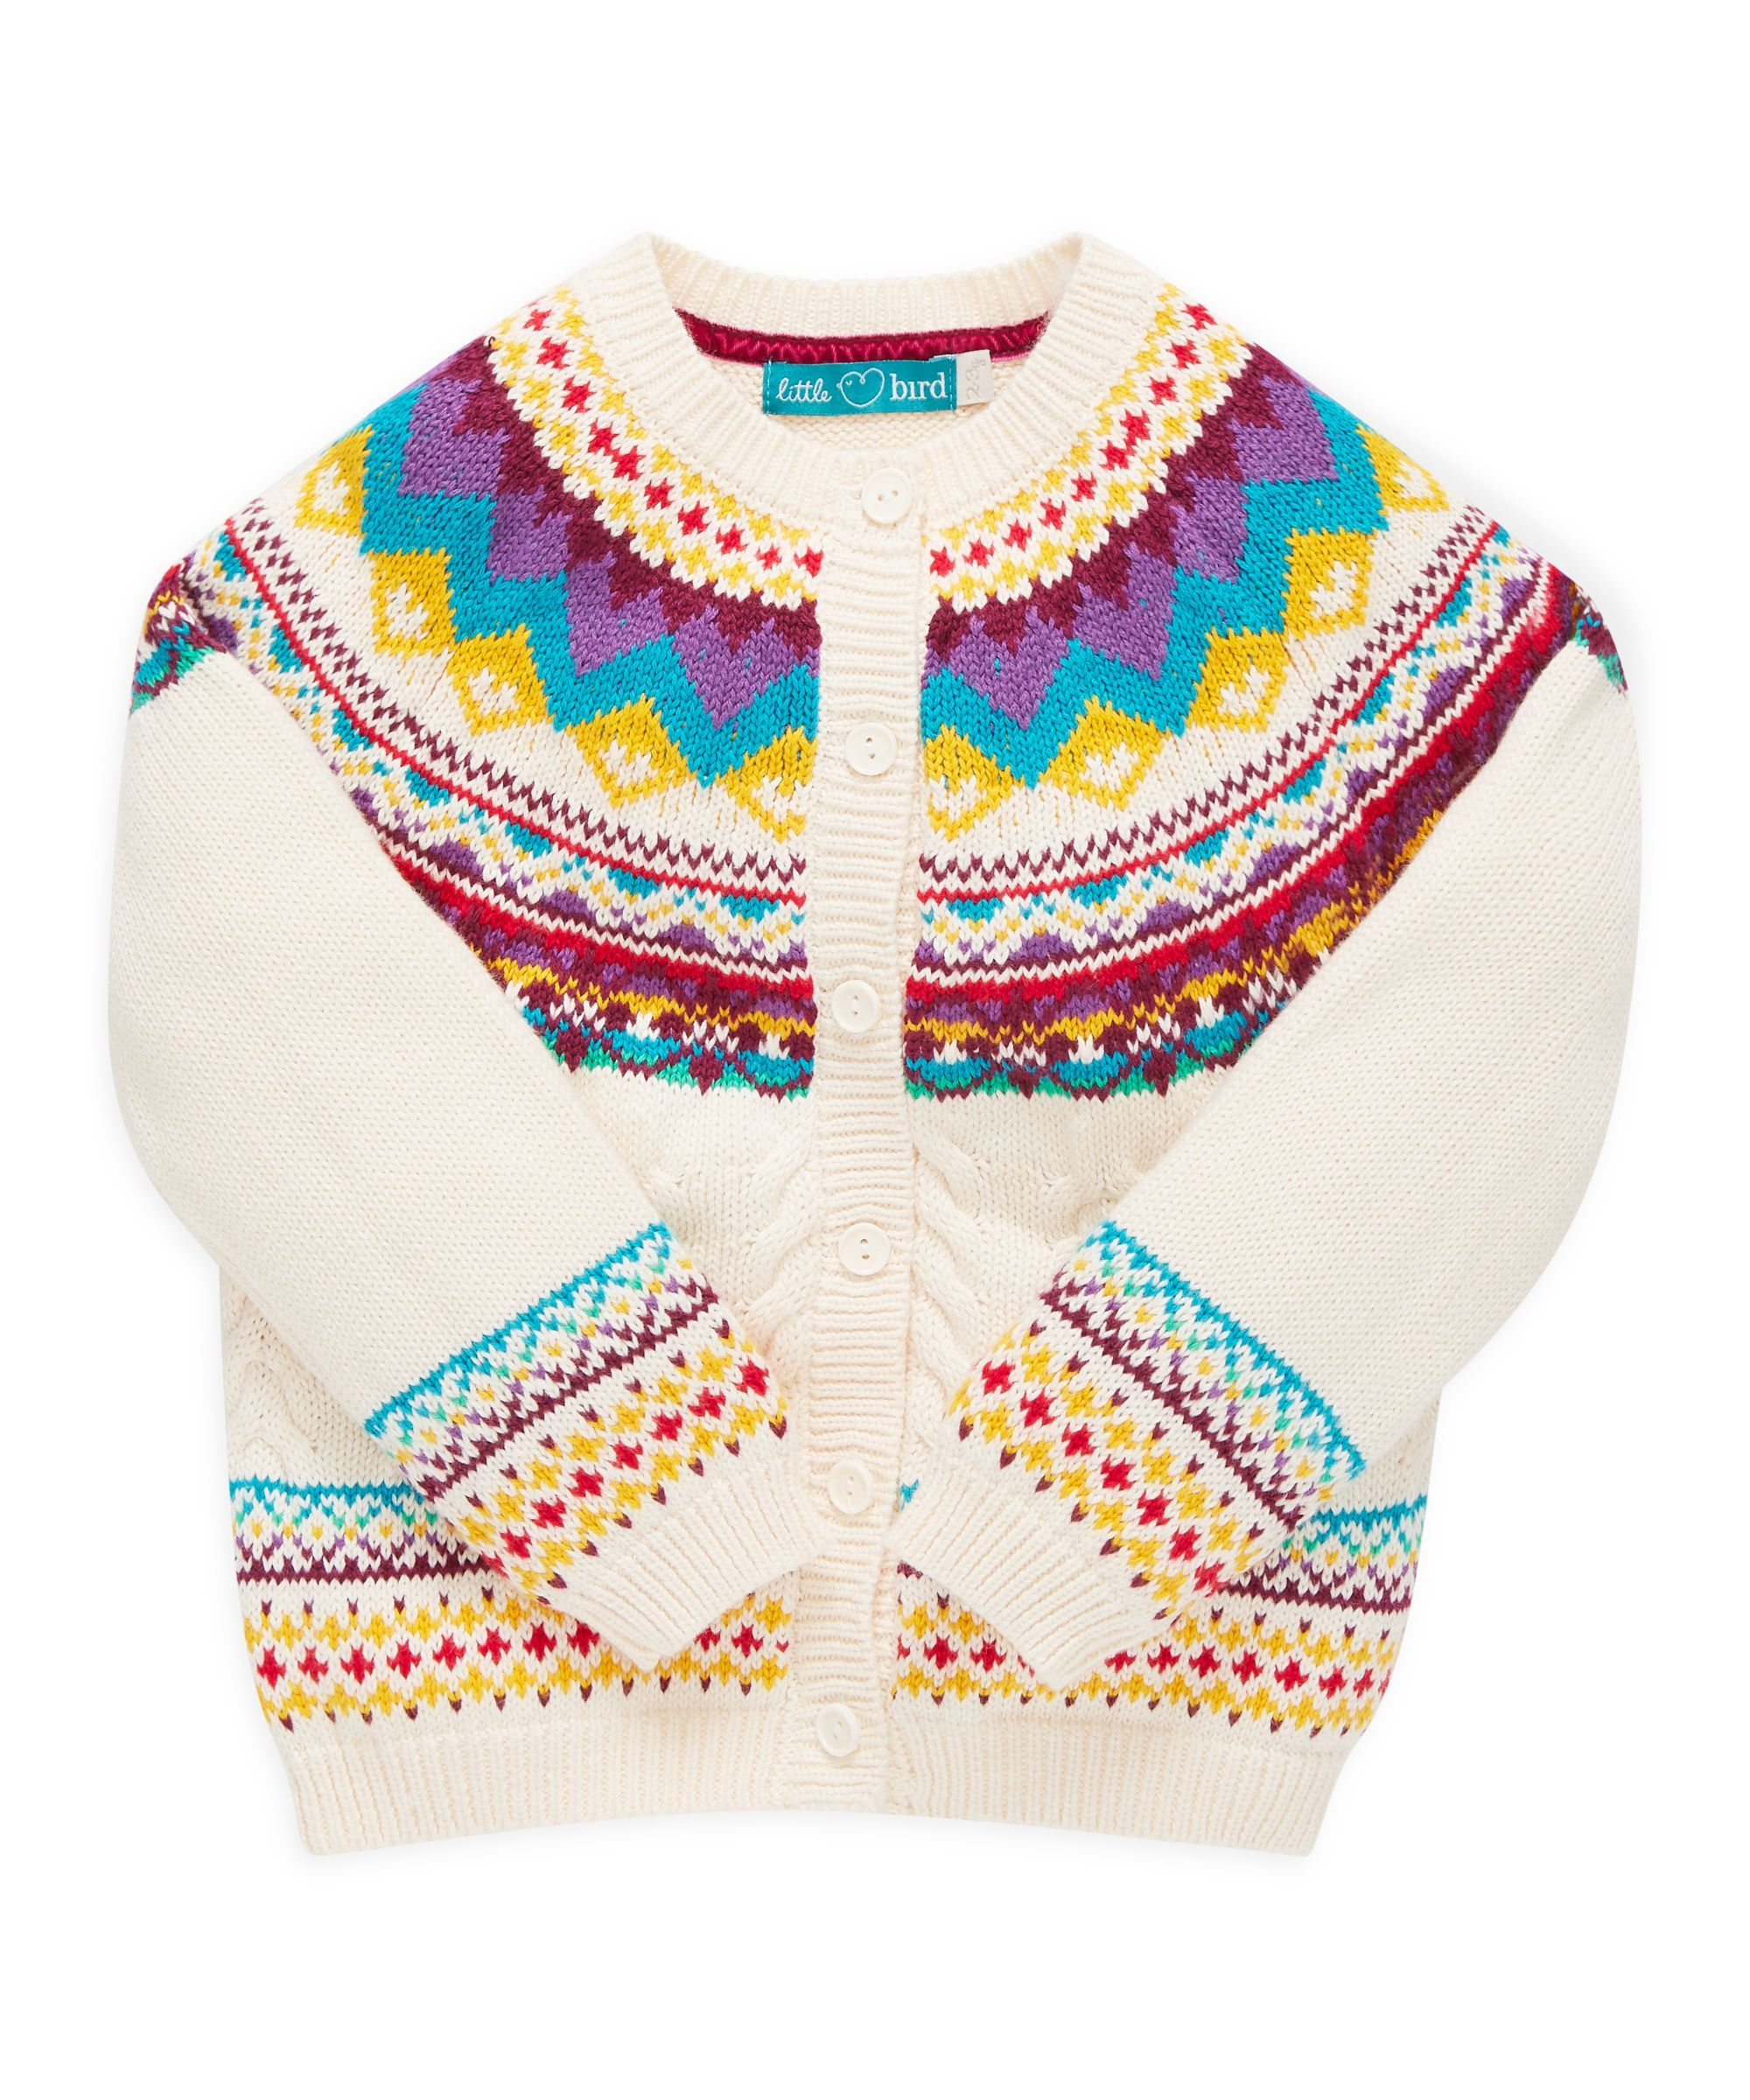 Little Bird by Jools Knitted Fairisle Cardigan | Bird and Kids ...